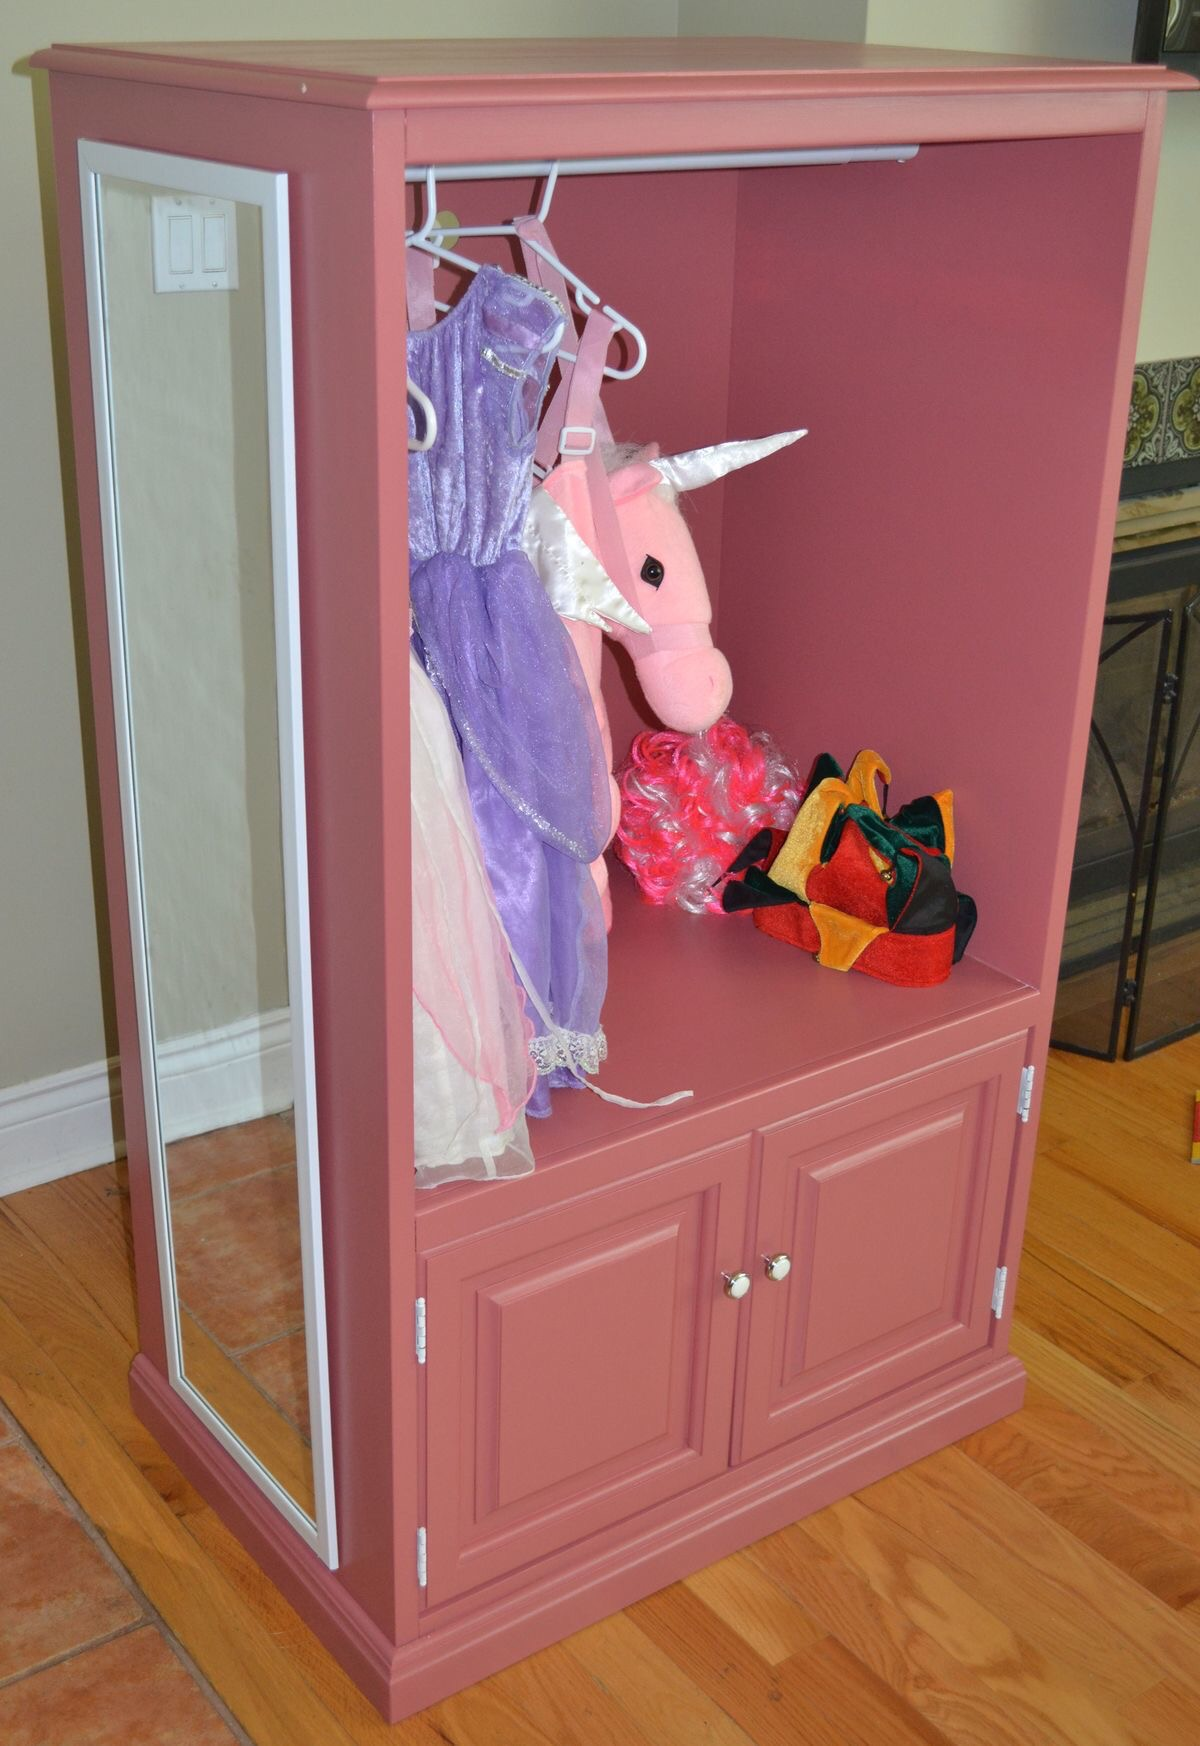 Genial The DIY Version Is To Use An Old Dresser Or TV Unit To Turn It Into A Little  Girls Dream Dress Up Closet. But After Pricing Out A Closet Rod, Paint, ...